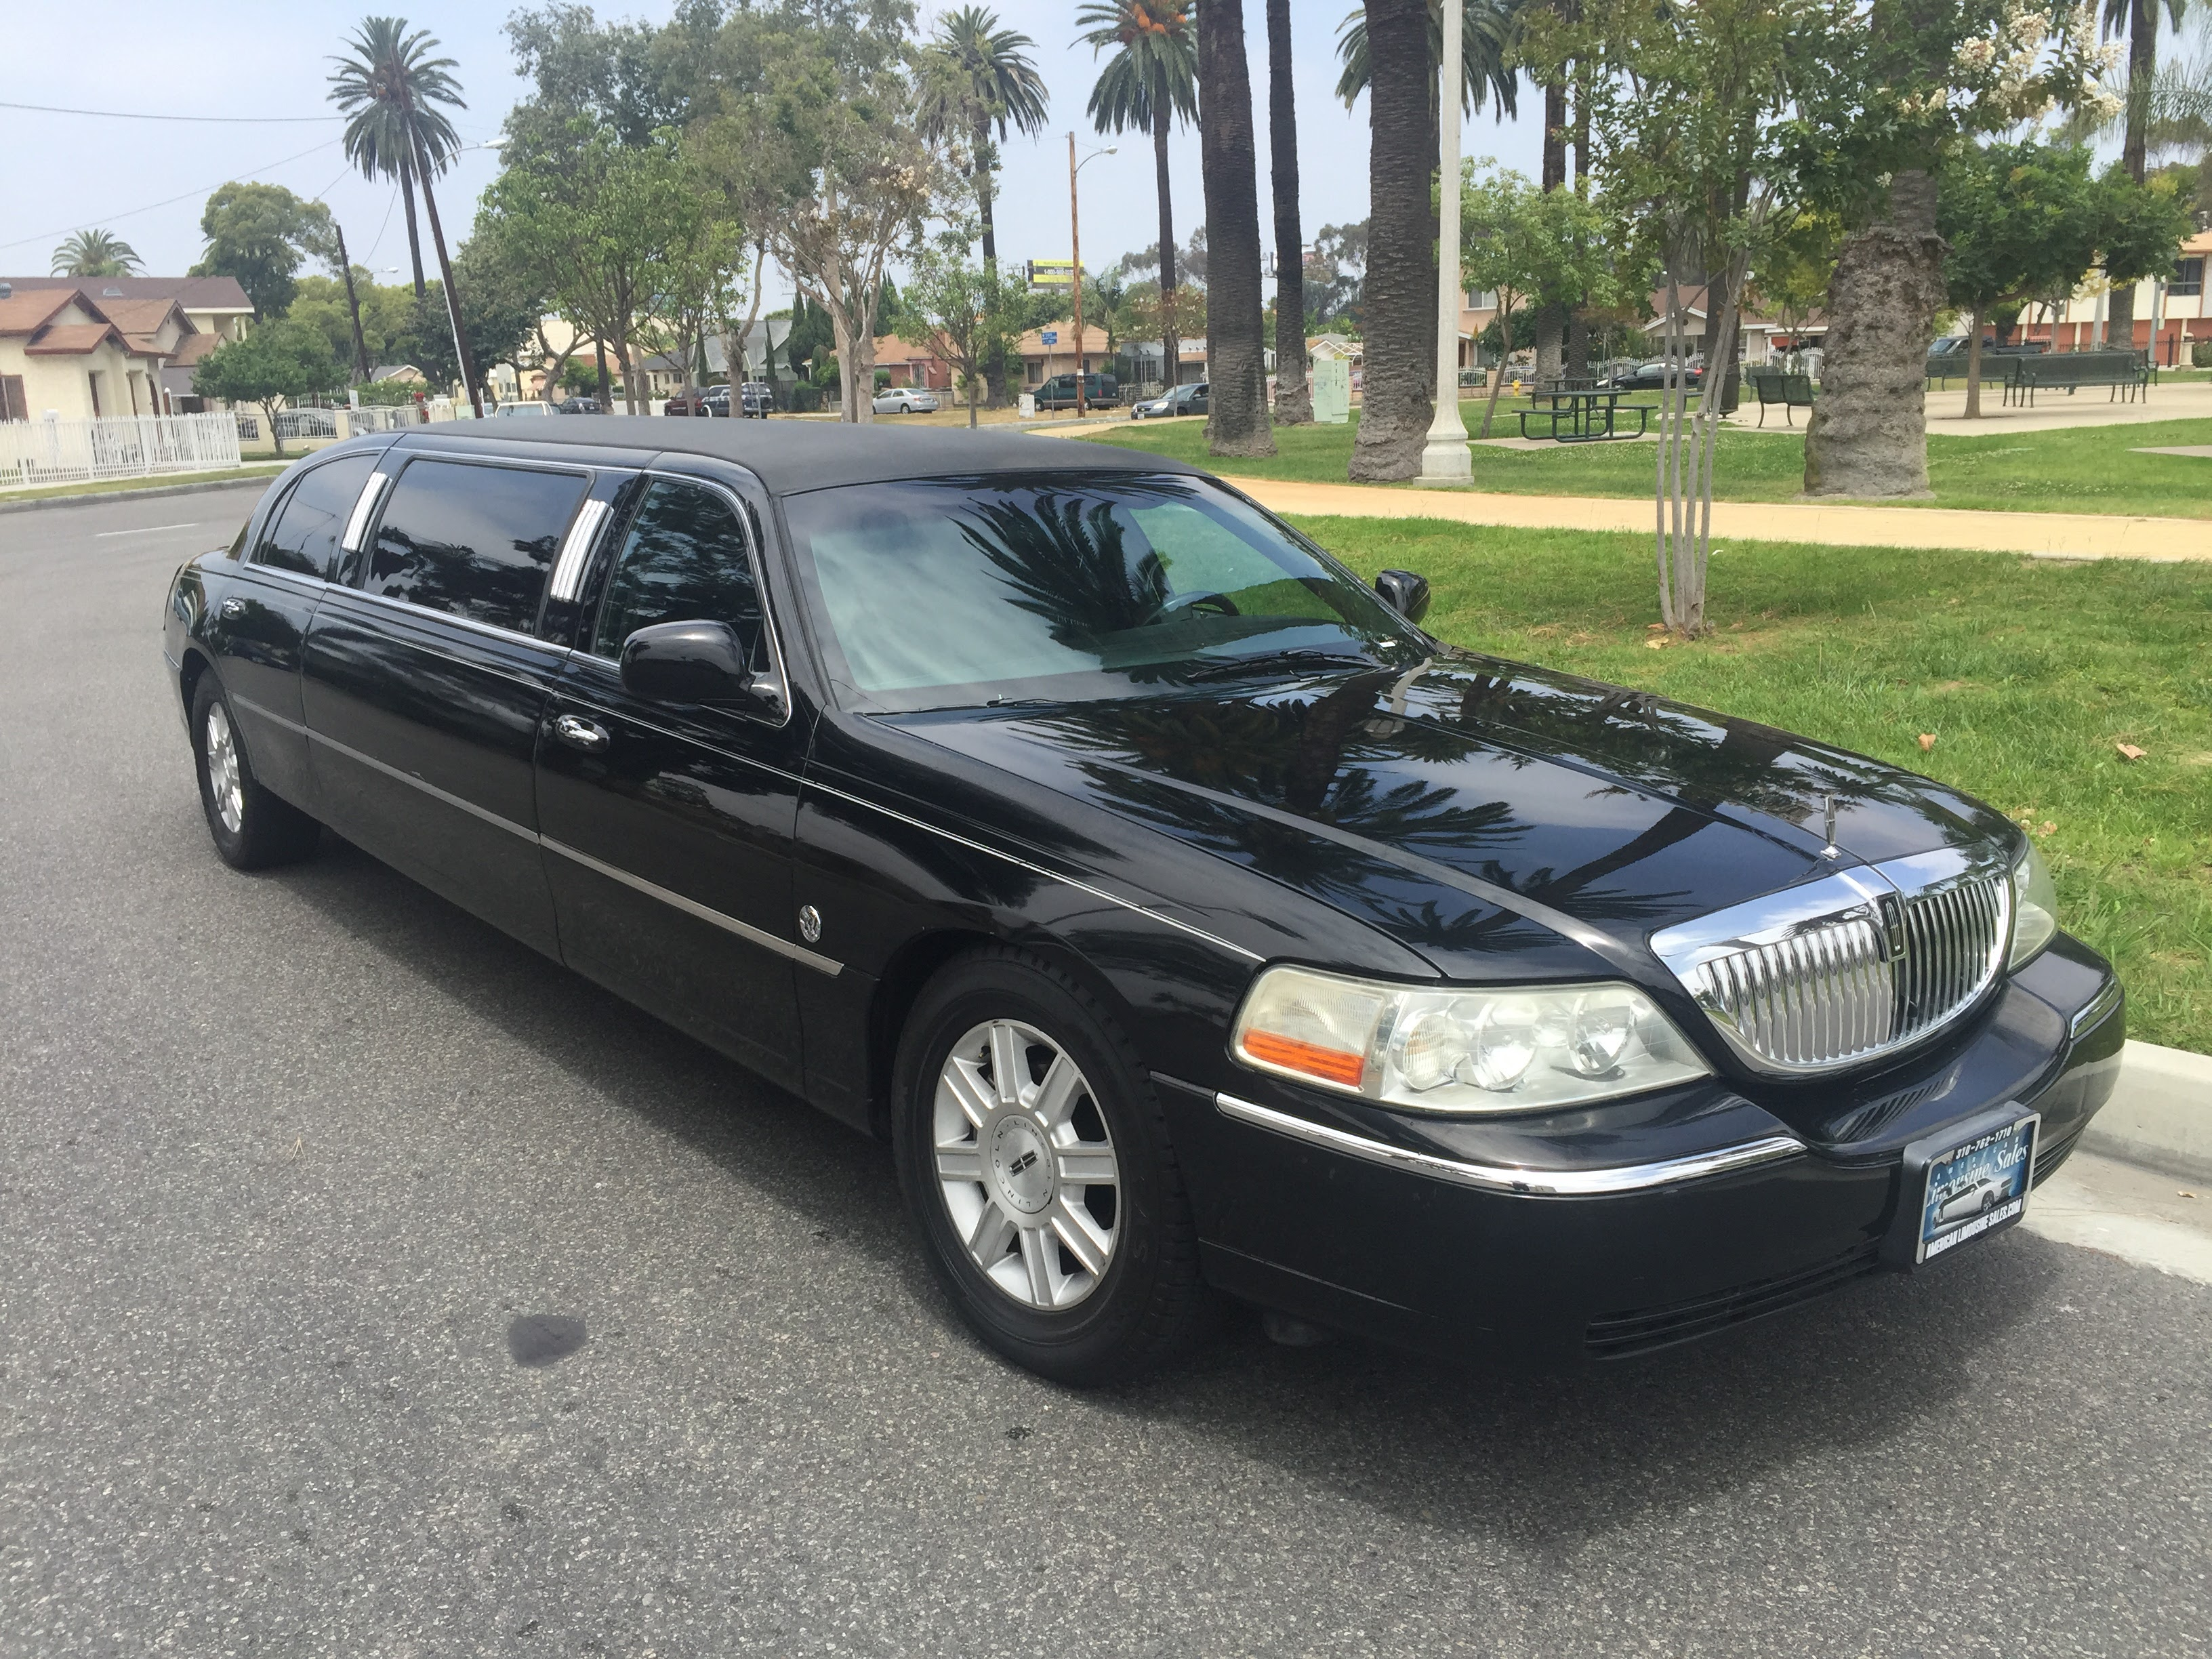 Black 72 Inch Lincoln Town Car Limousine For Sale 7235